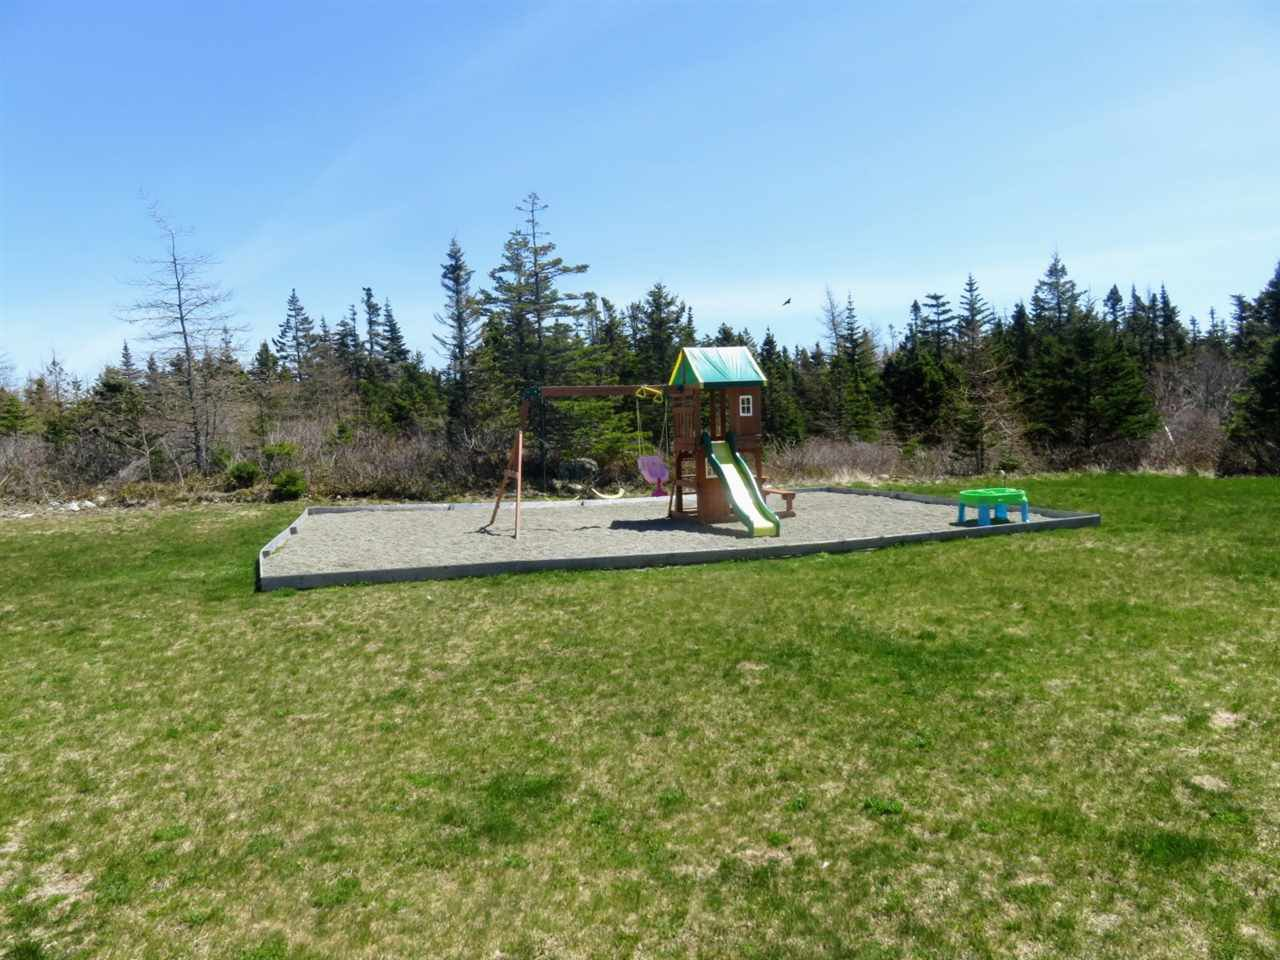 Photo 7: Photos: 1902 Stoney Island Road in Centreville: 407-Shelburne County Residential for sale (South Shore)  : MLS®# 201926888